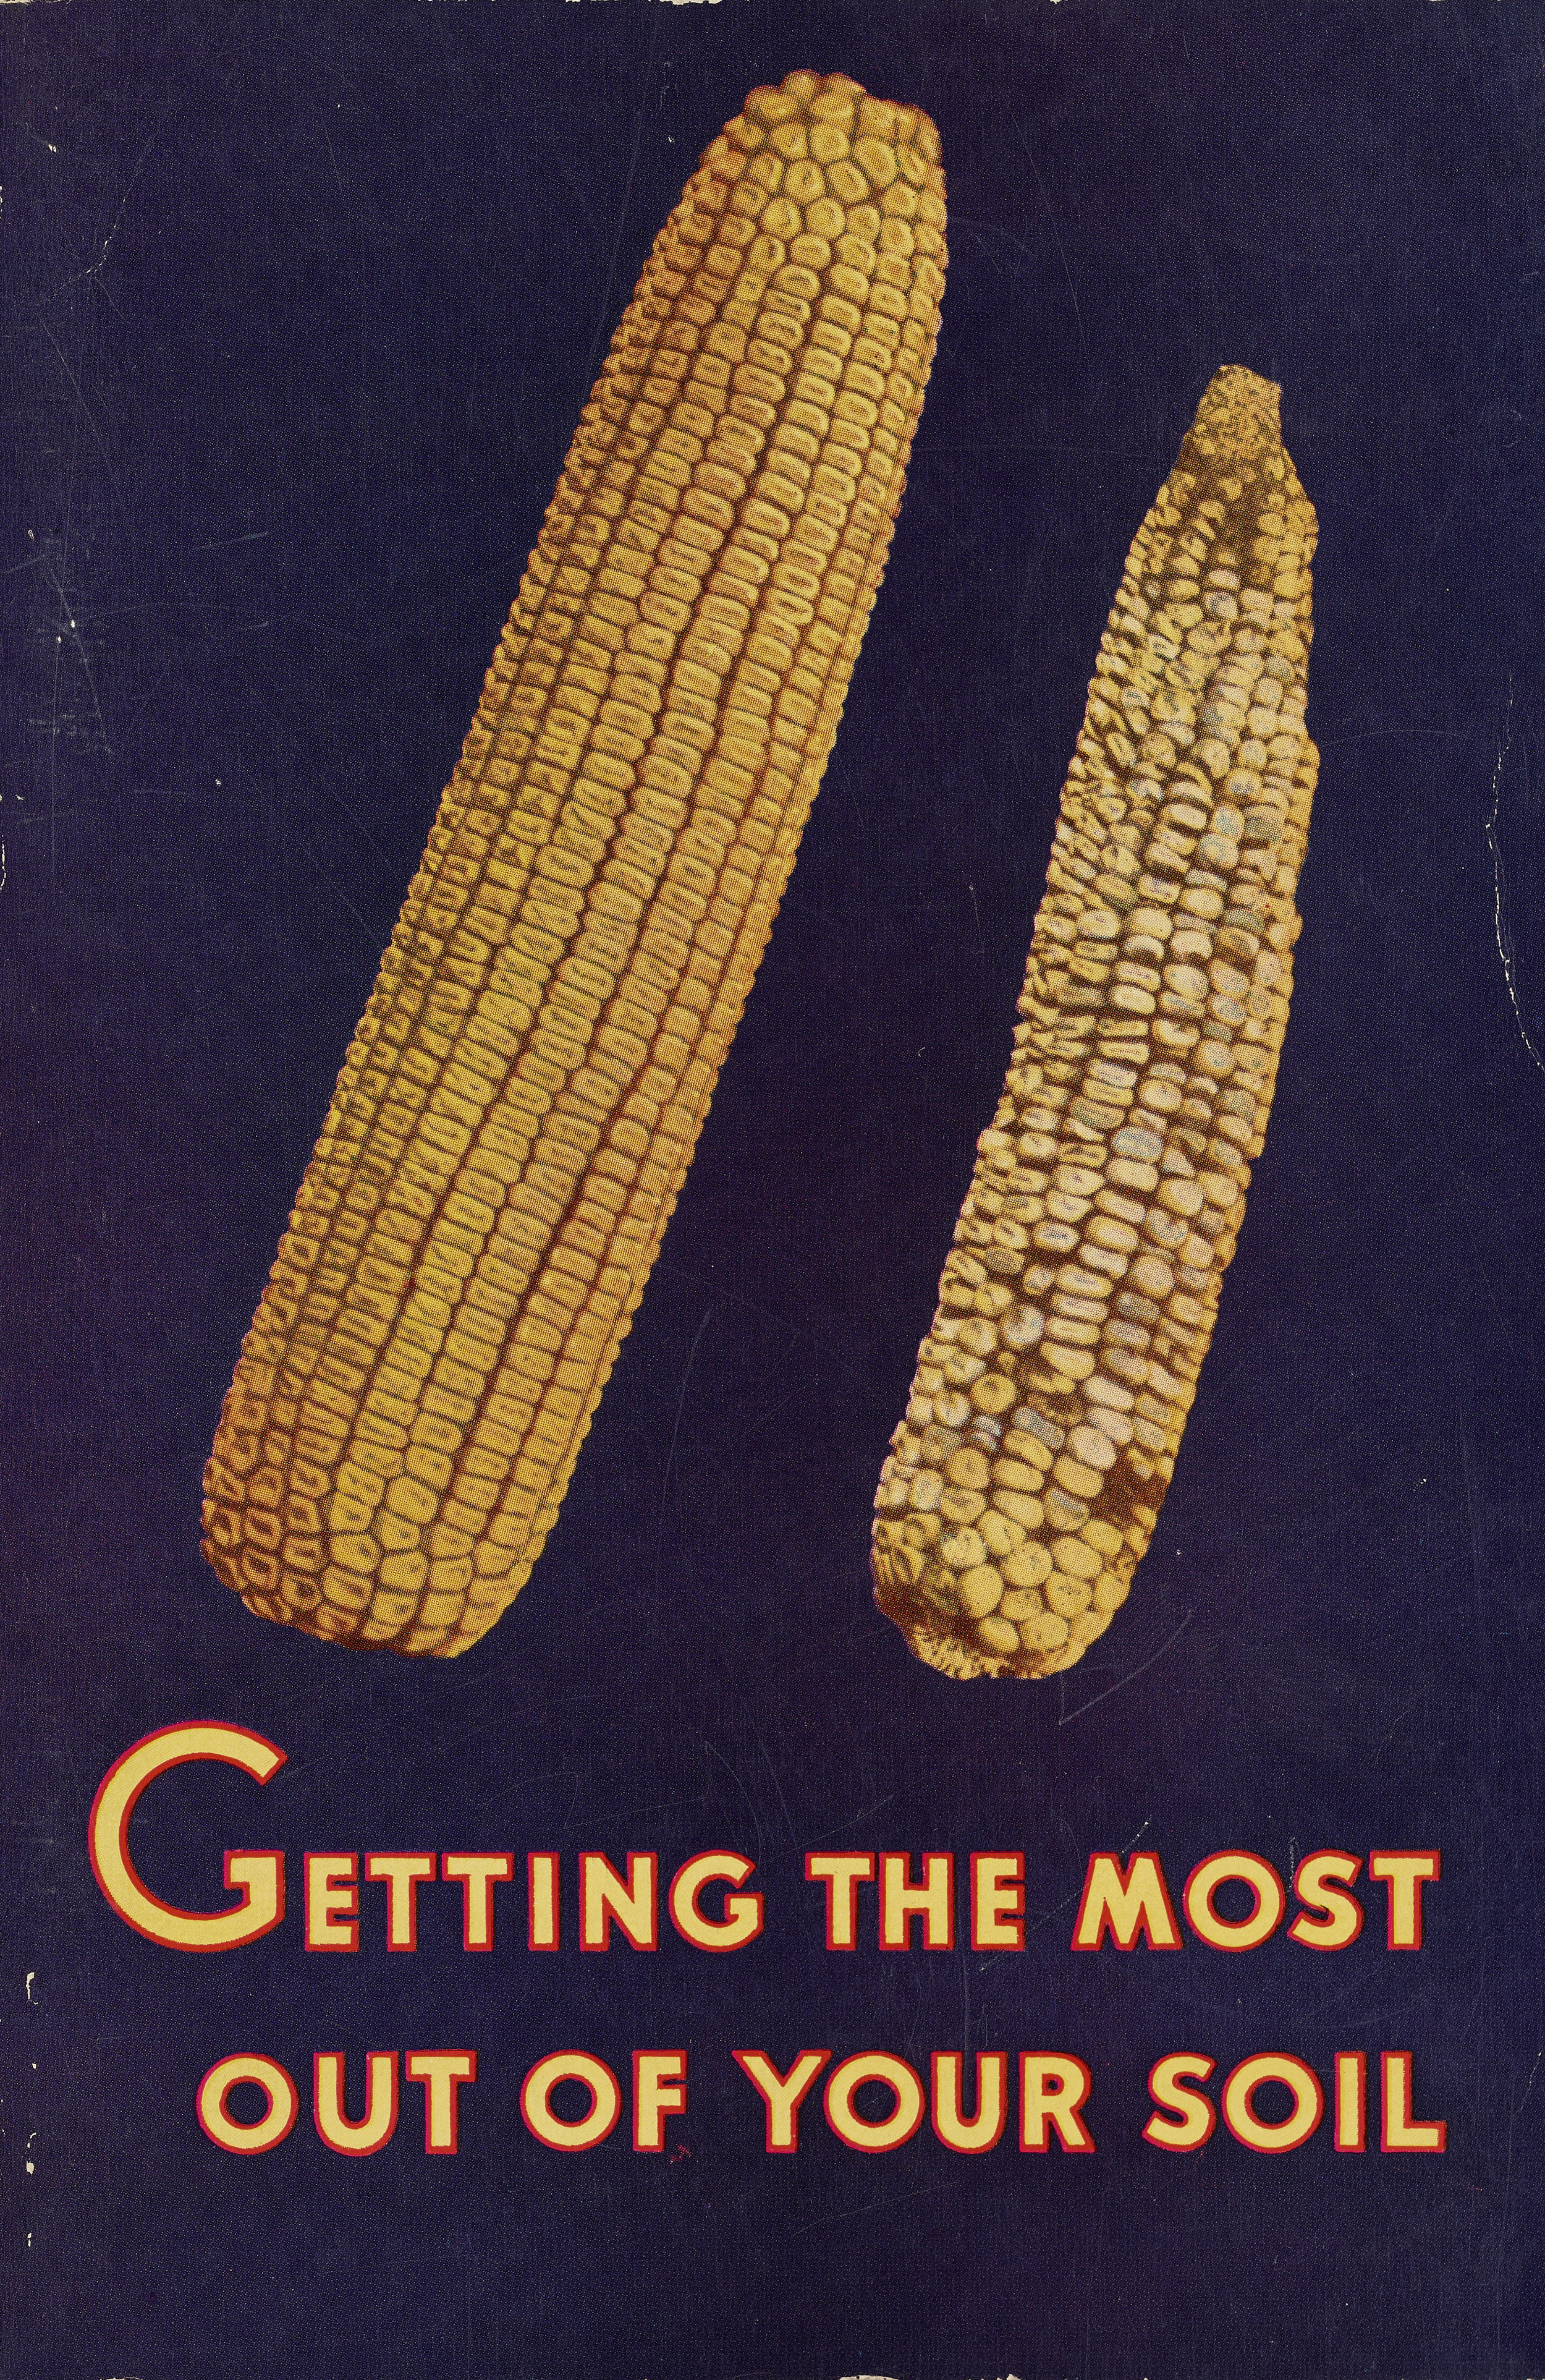 Corn brochure, WPA Federal Writers' Project collection, NYC Municipal Archives.